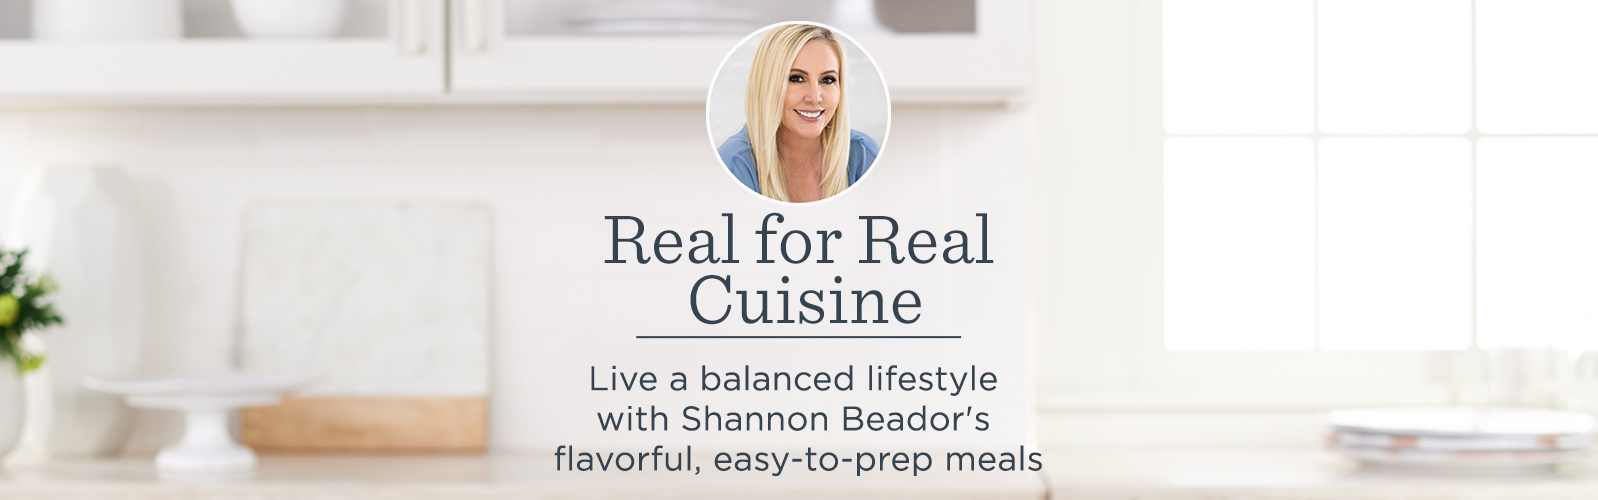 Real for Real Cuisine - Live a balanced lifestyle with Shannon Beador's flavorful, easy-to-prep meals